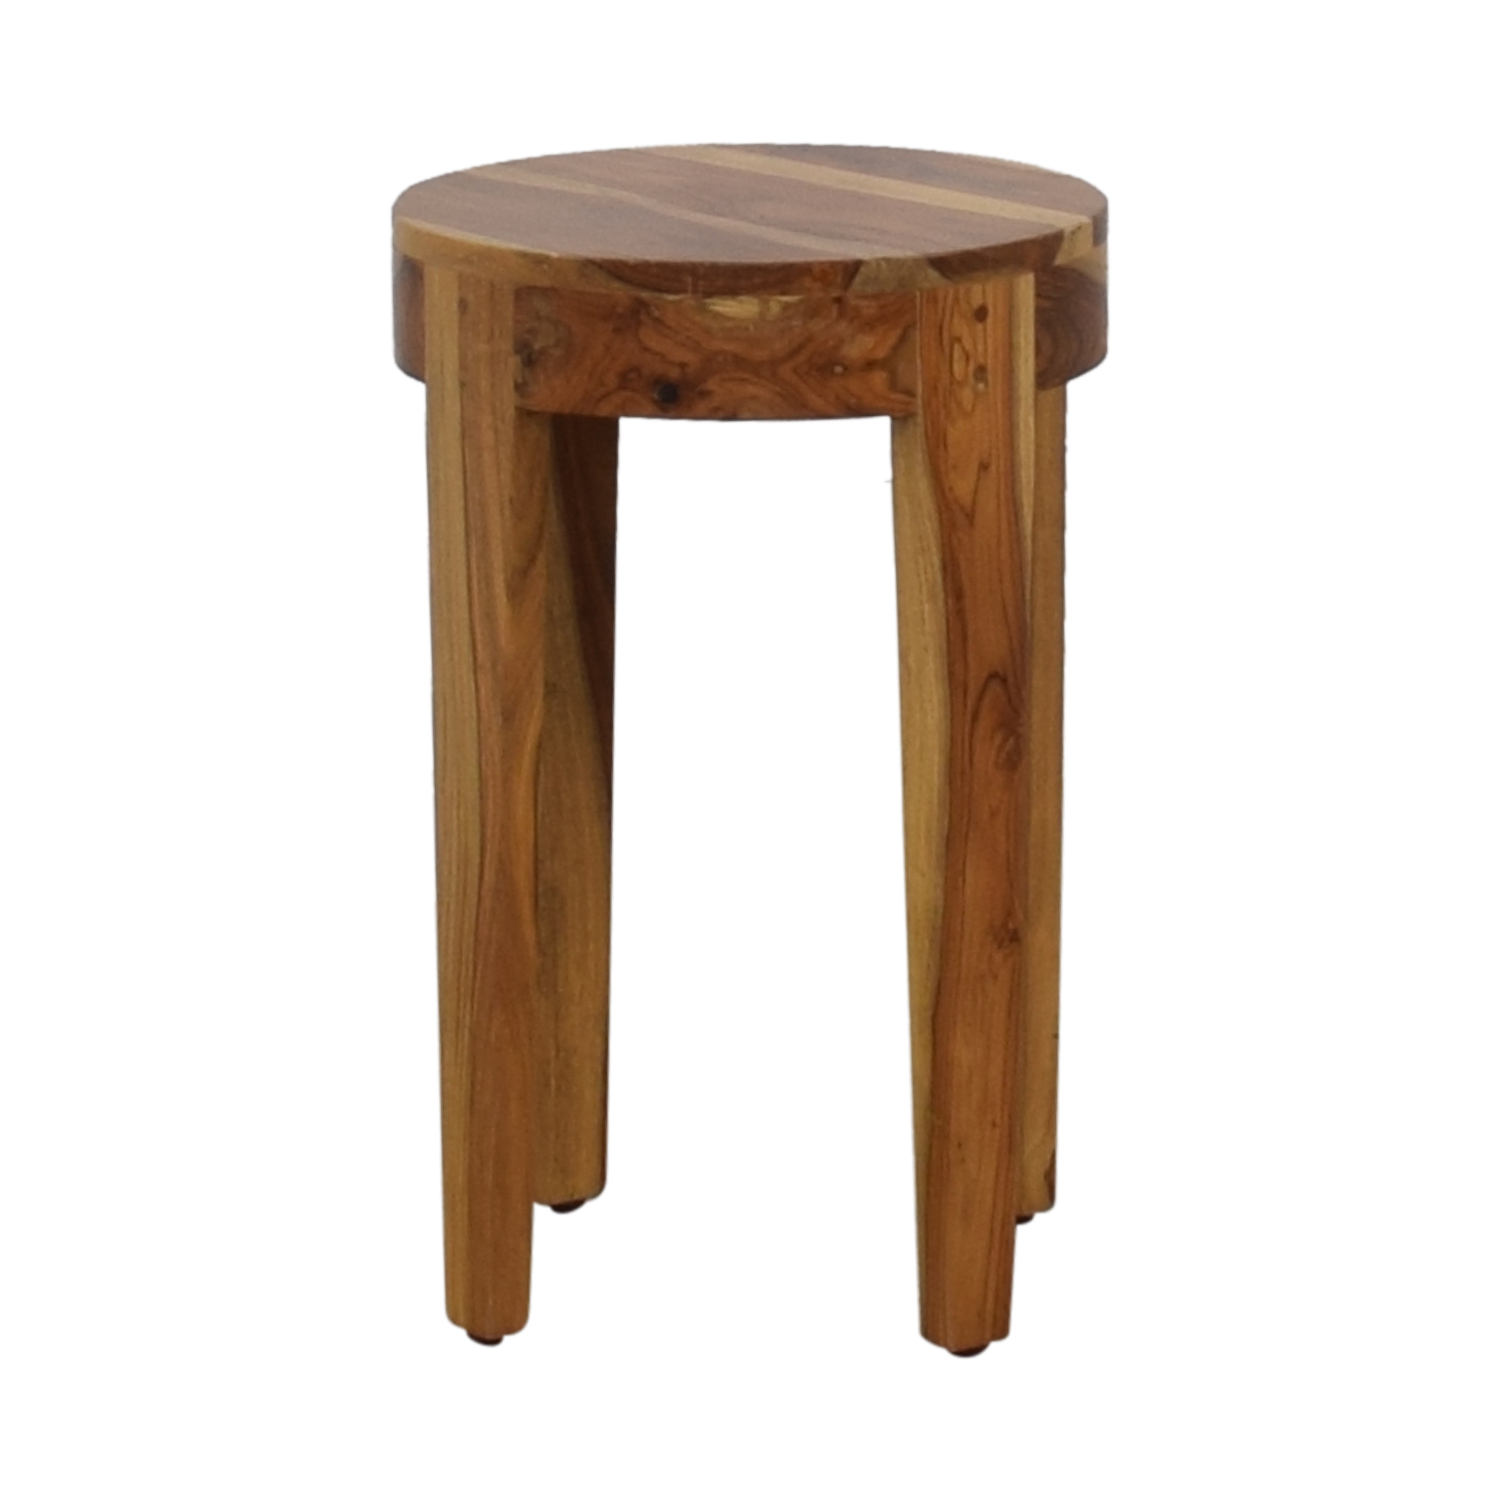 52% OFF   Target Target Small Round Accent Table / Tables